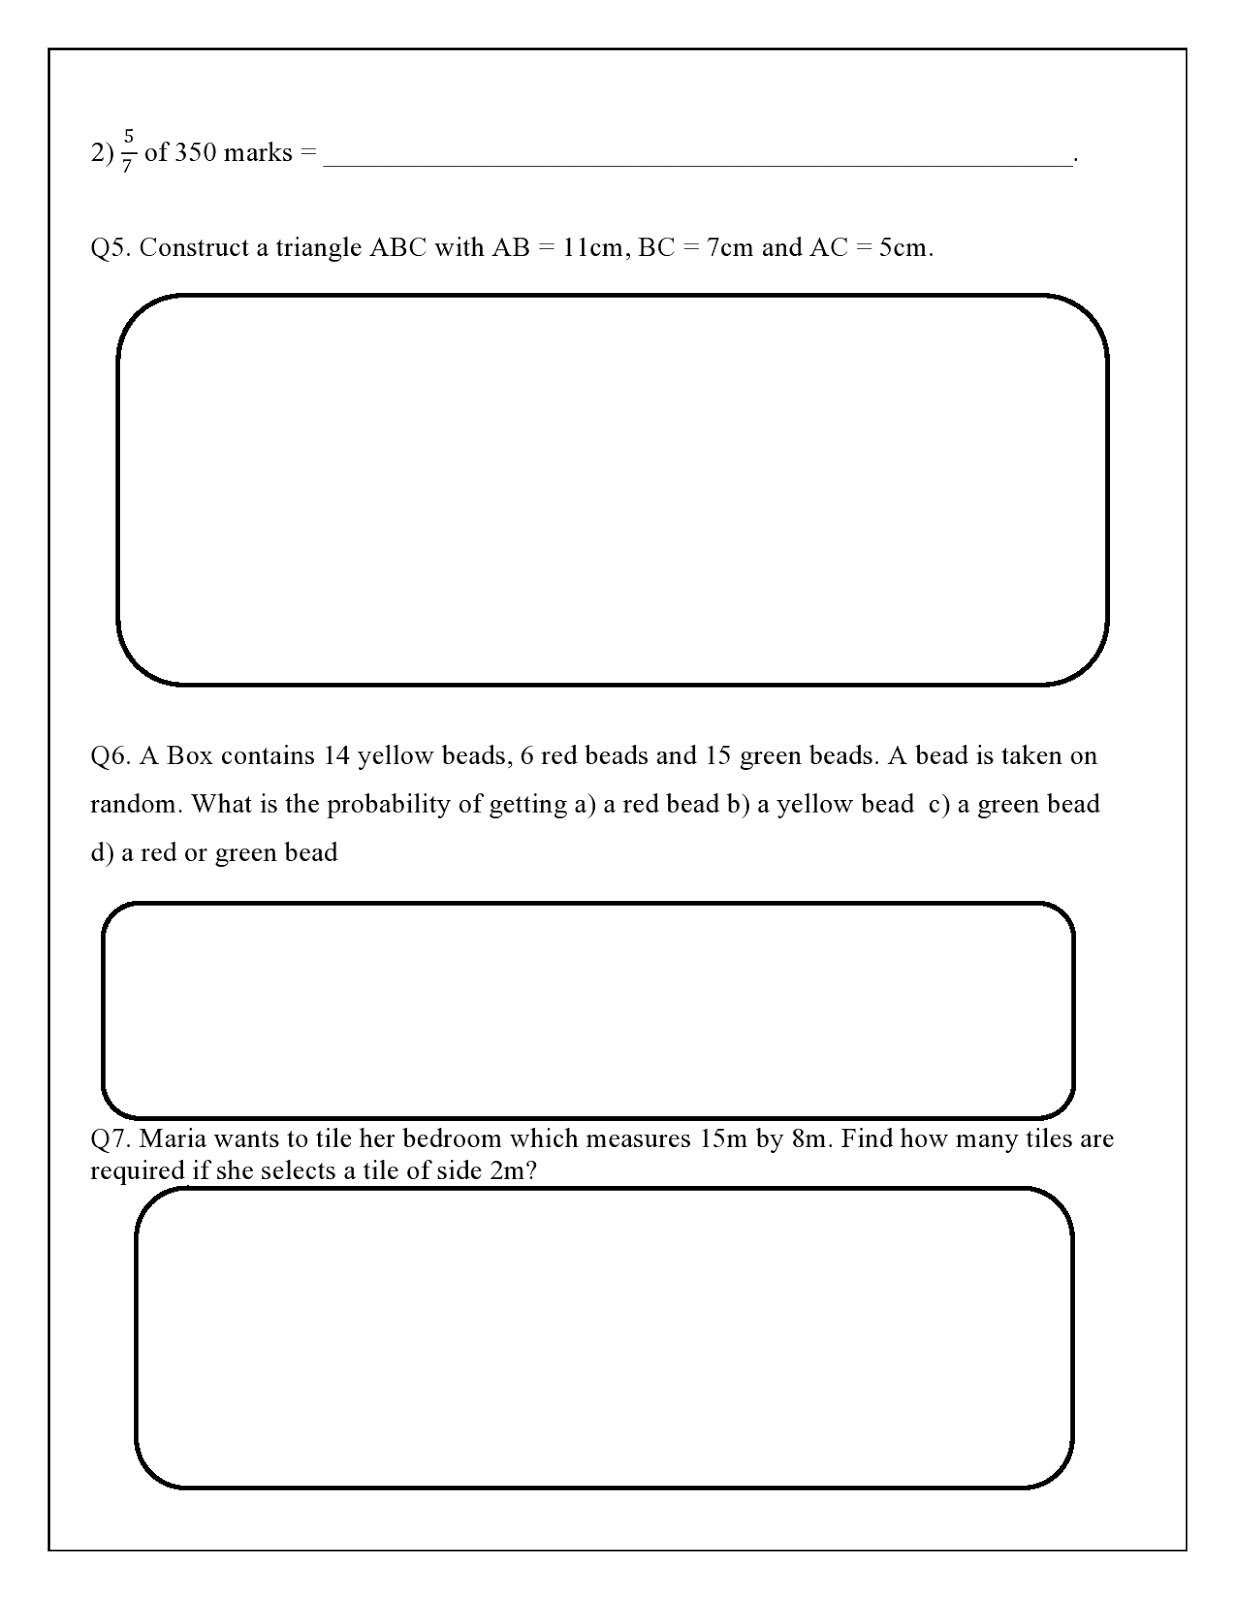 WORLD SCHOOL OMAN: Revision Worksheets for Grade 7 as on 09-05-2019 [ 1600 x 1236 Pixel ]